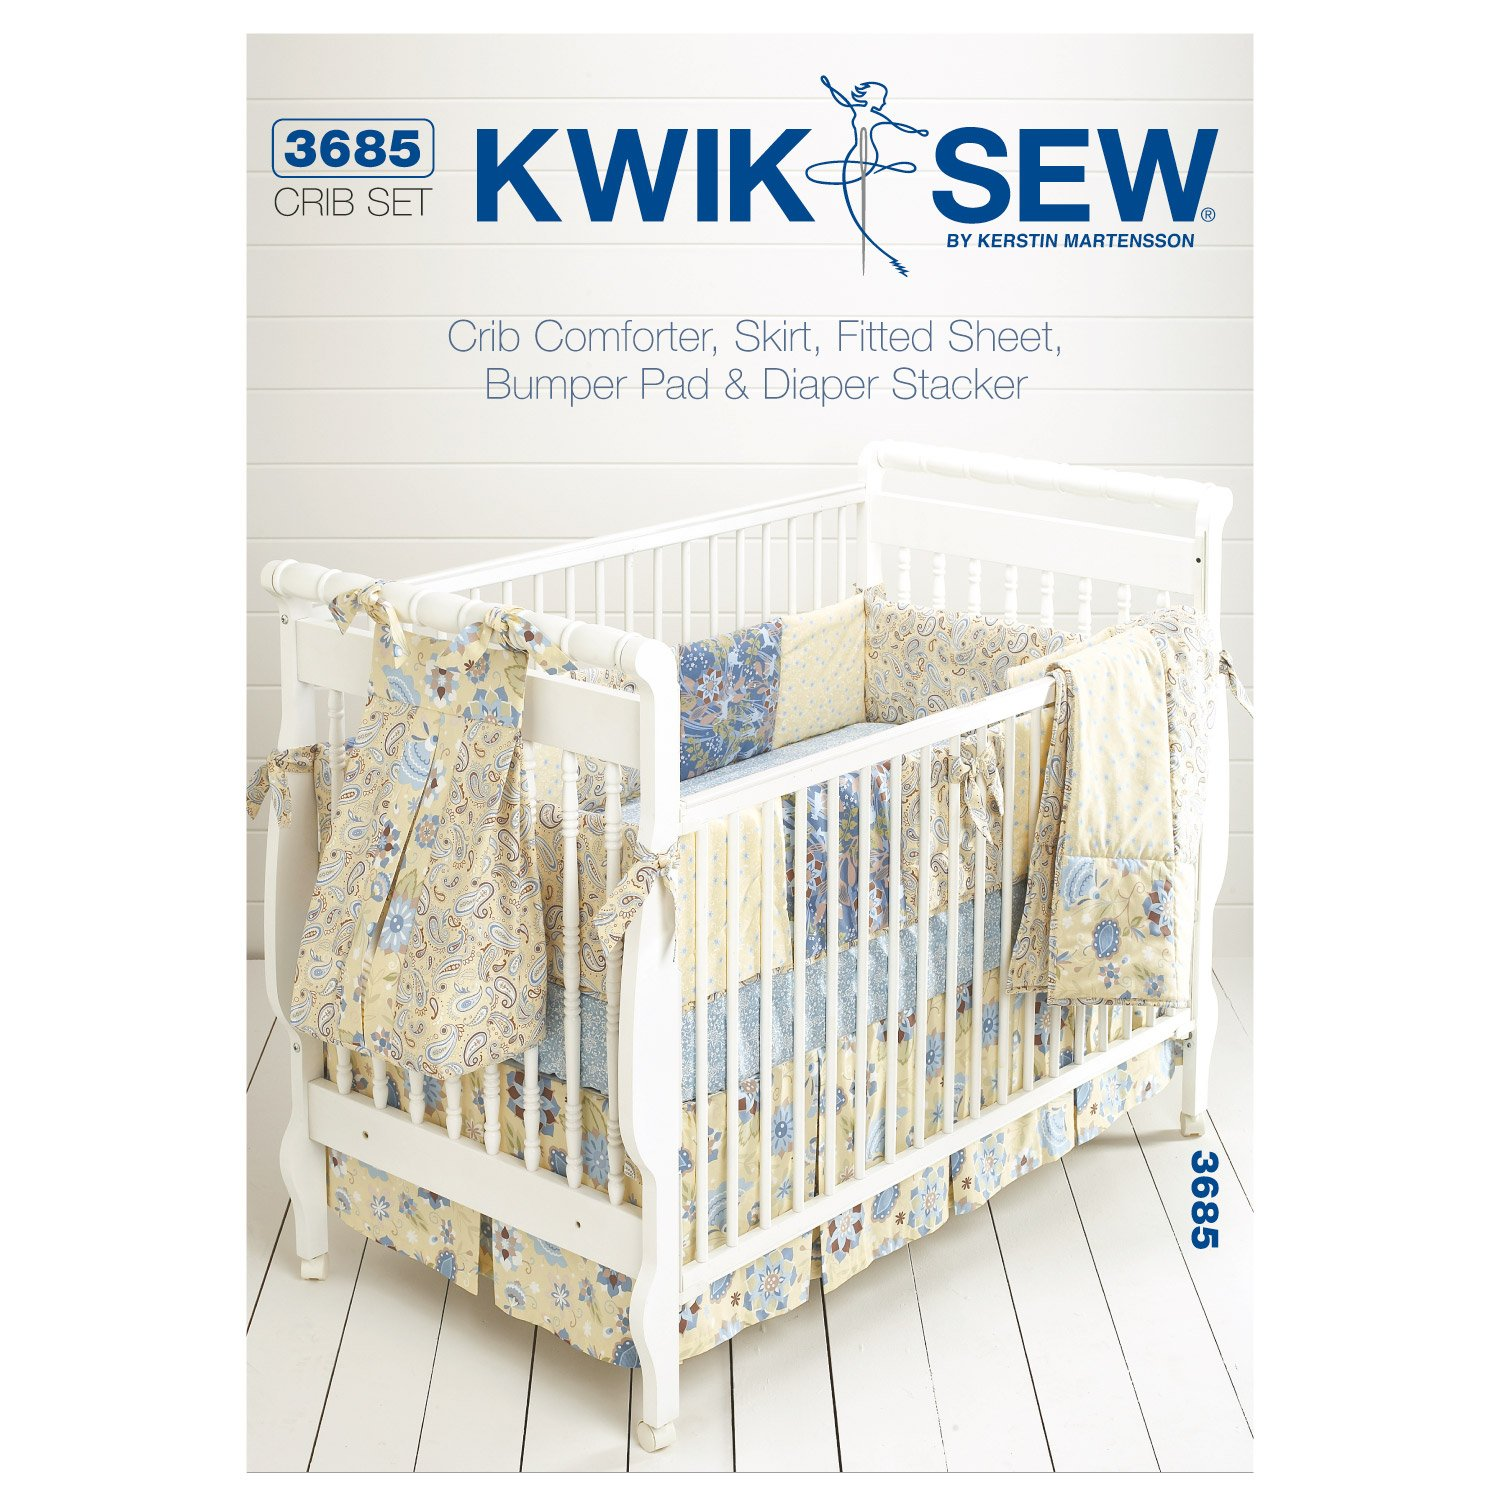 Kwik Sew Crib Comforter, Skirt, Fitted Sheet, Bumper Pad & Diaper Stacker Pattern KP-3685